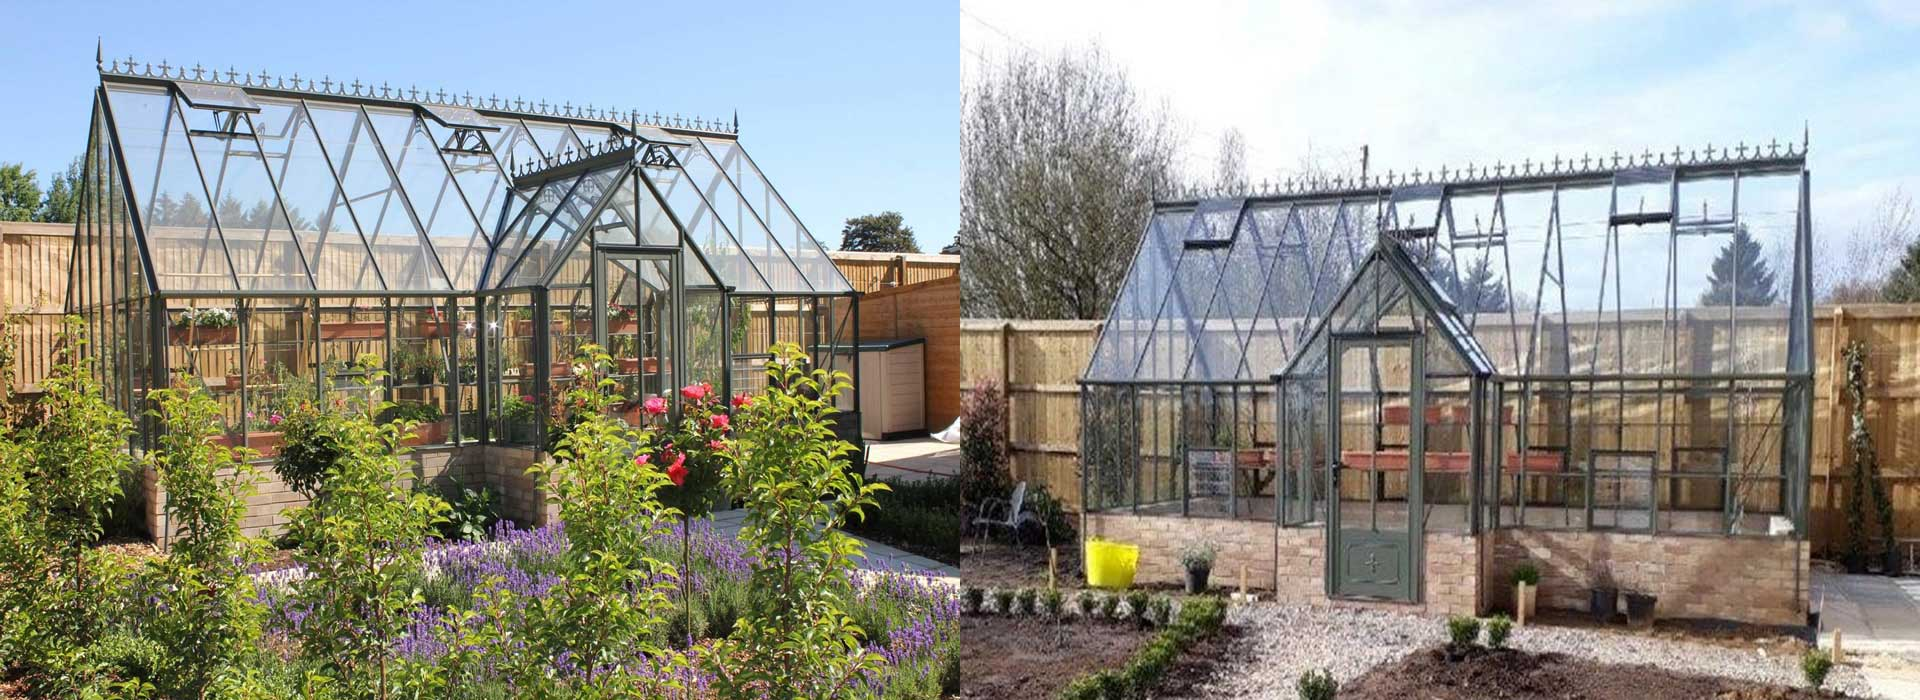 "Robinsons Ramsbury Victorian Greenhouses - 14'8"" wide"